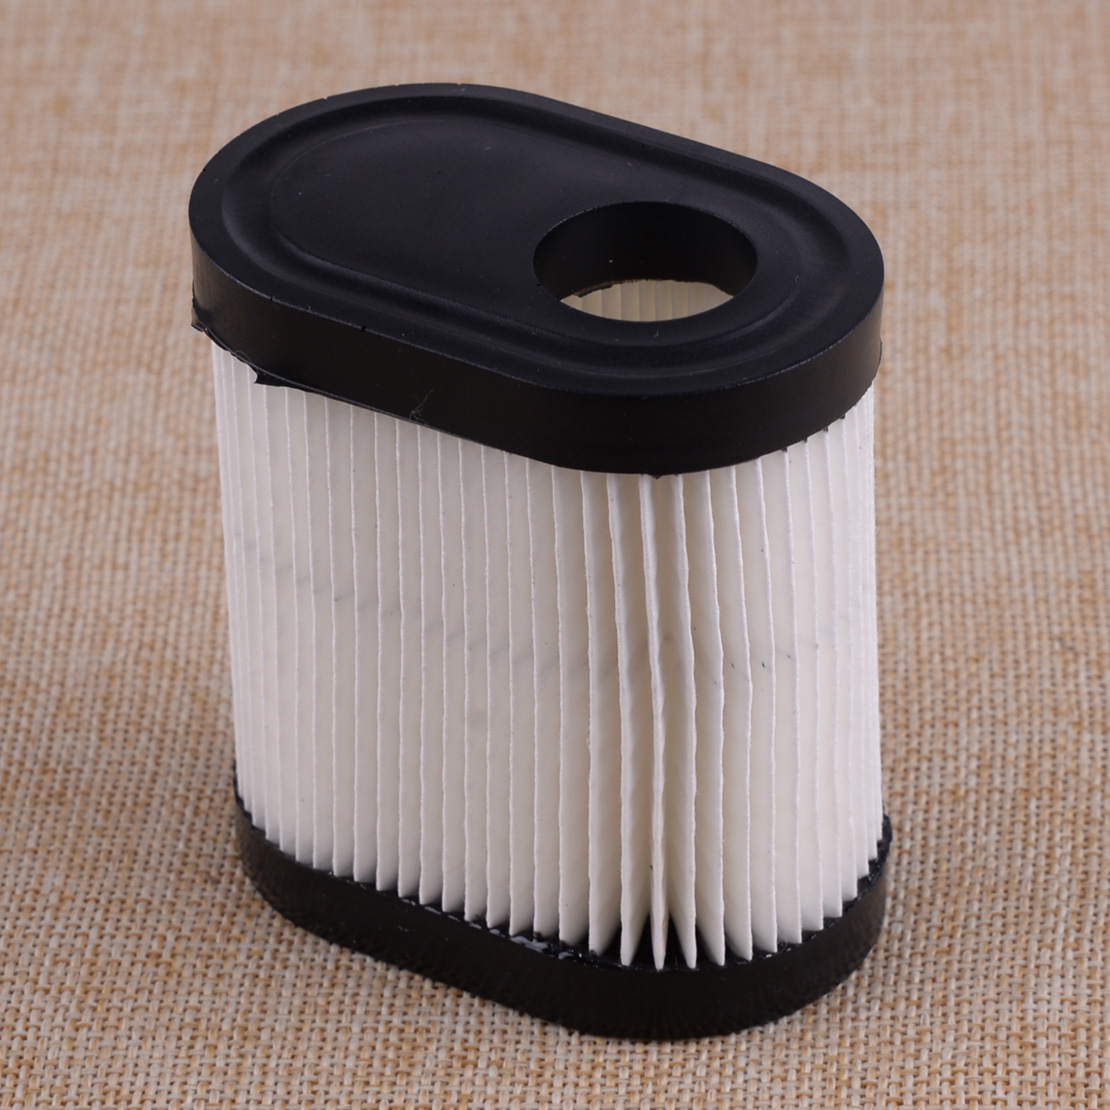 TECUMSEH AIR FILTERS LOT OF 50 TECUMSEH PART# 36905